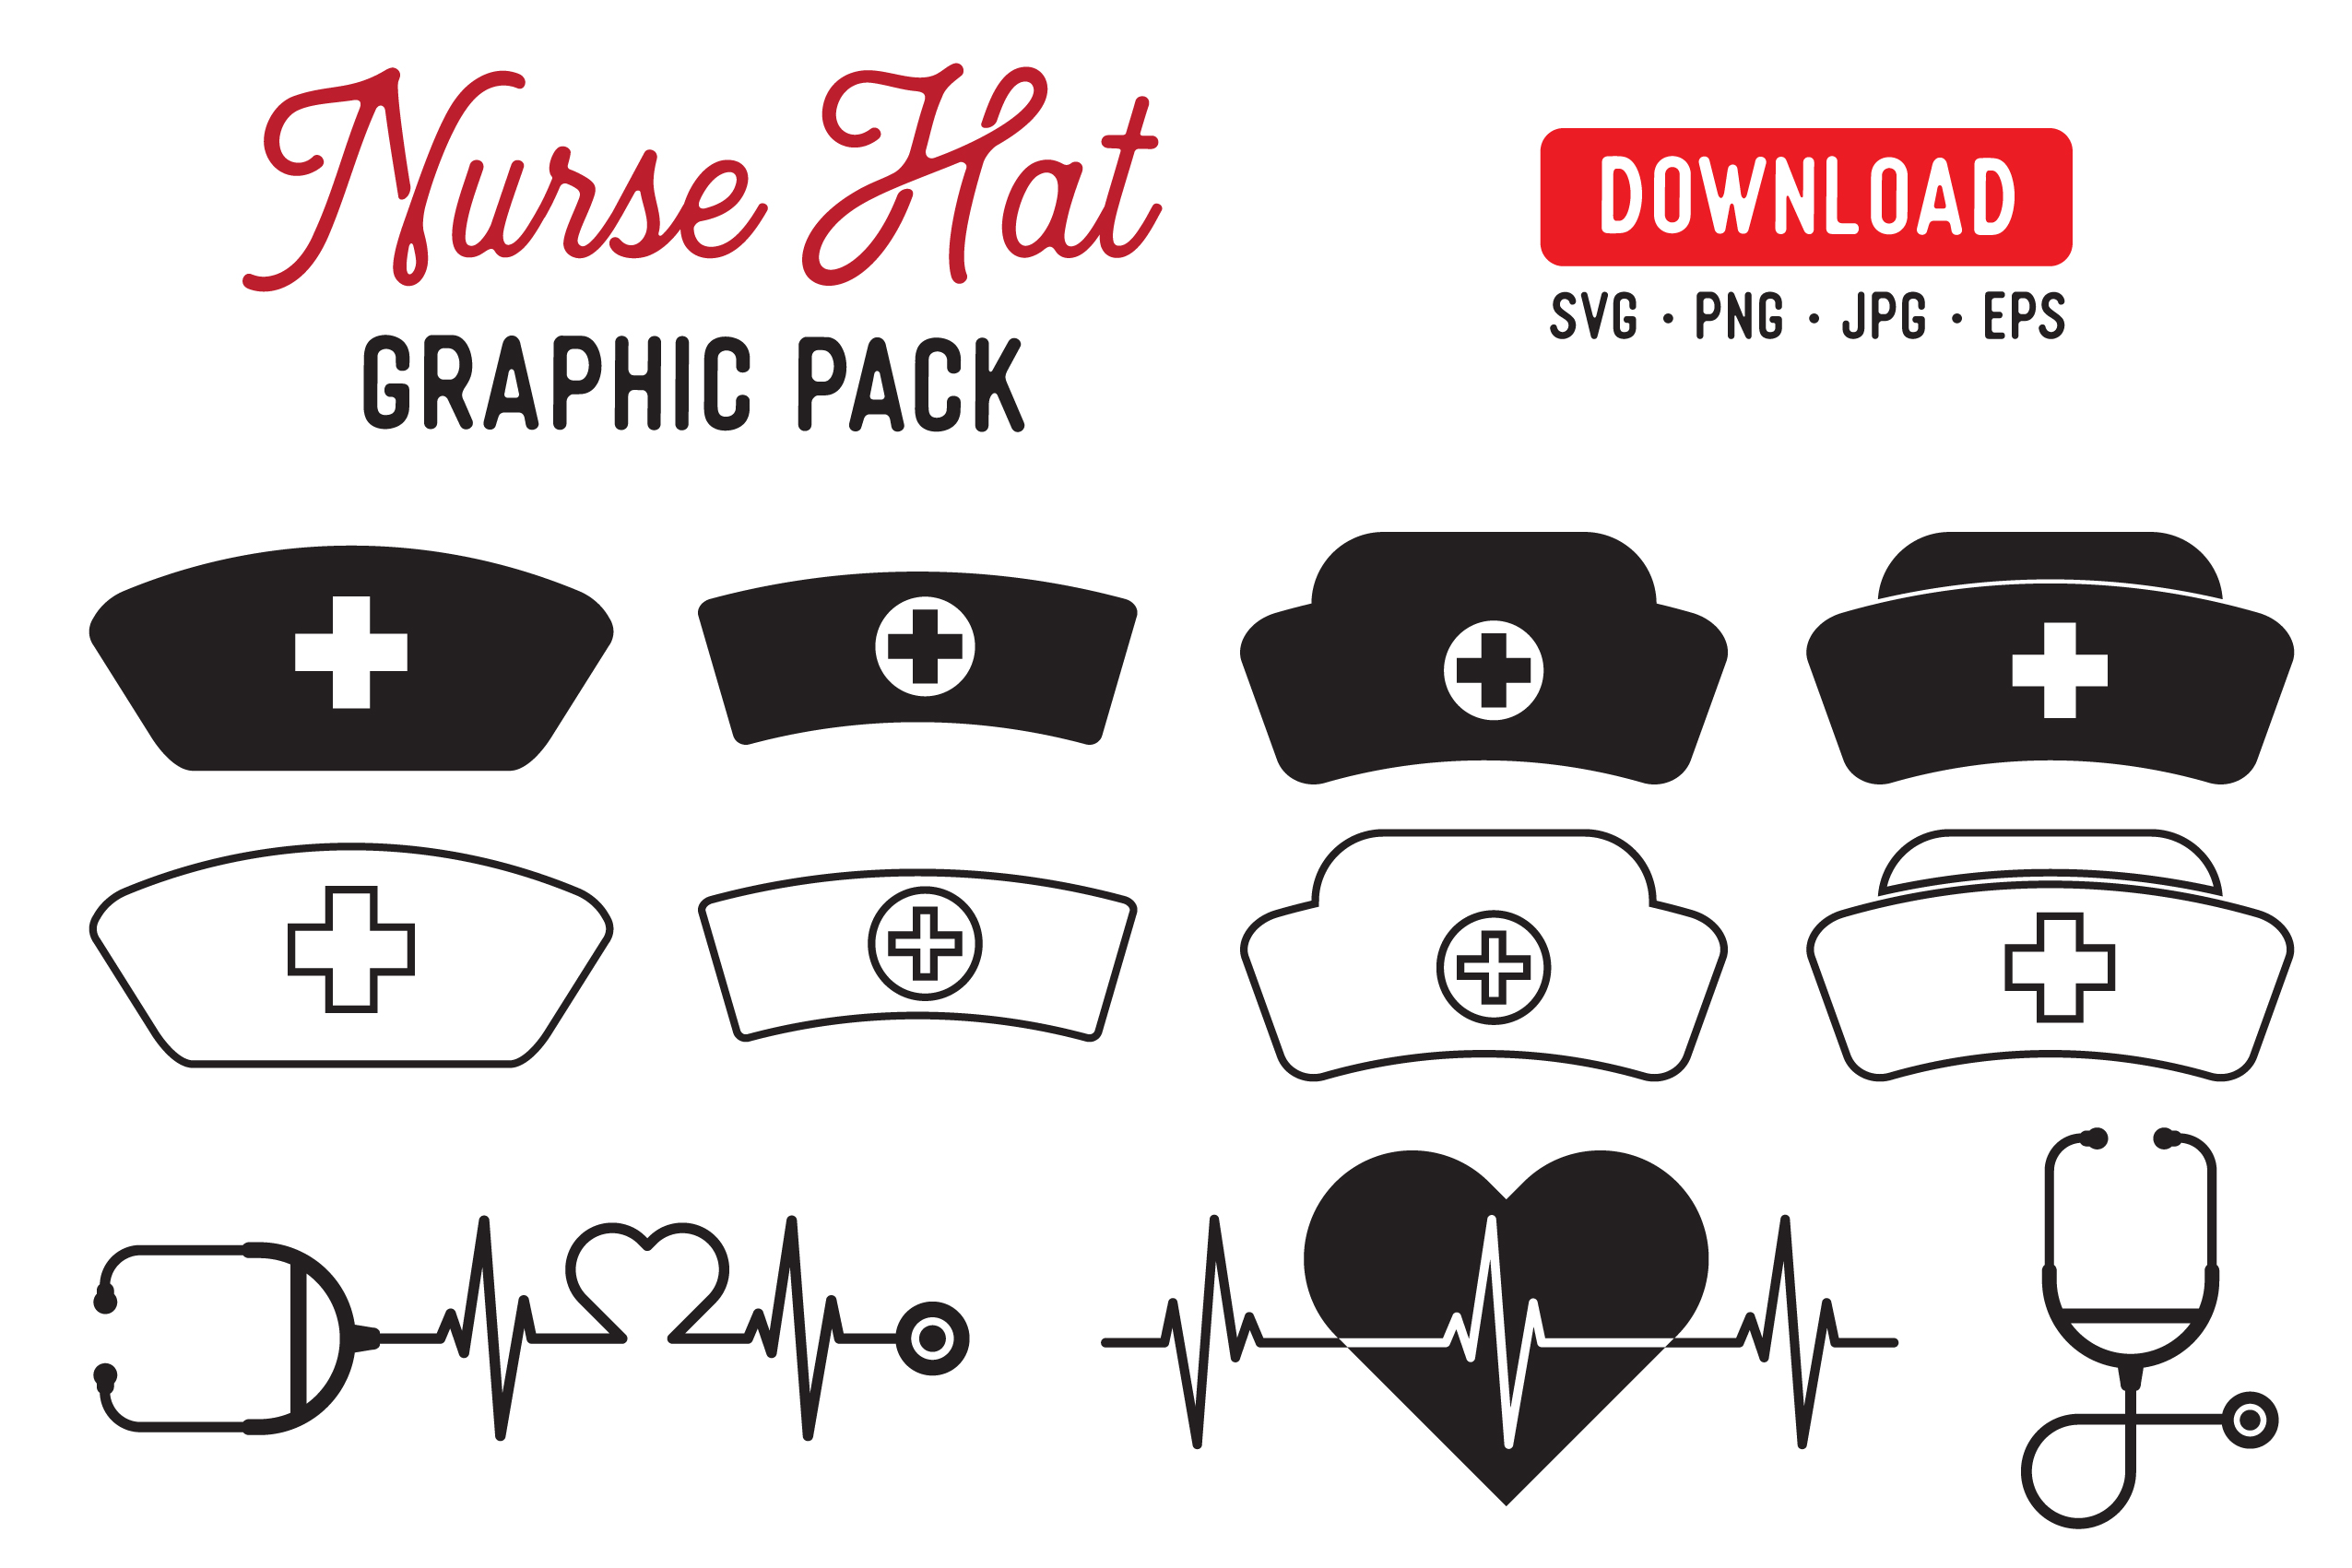 Download Free Nurse Hat Graphic Pack Graphic By The Gradient Fox Creative for Cricut Explore, Silhouette and other cutting machines.